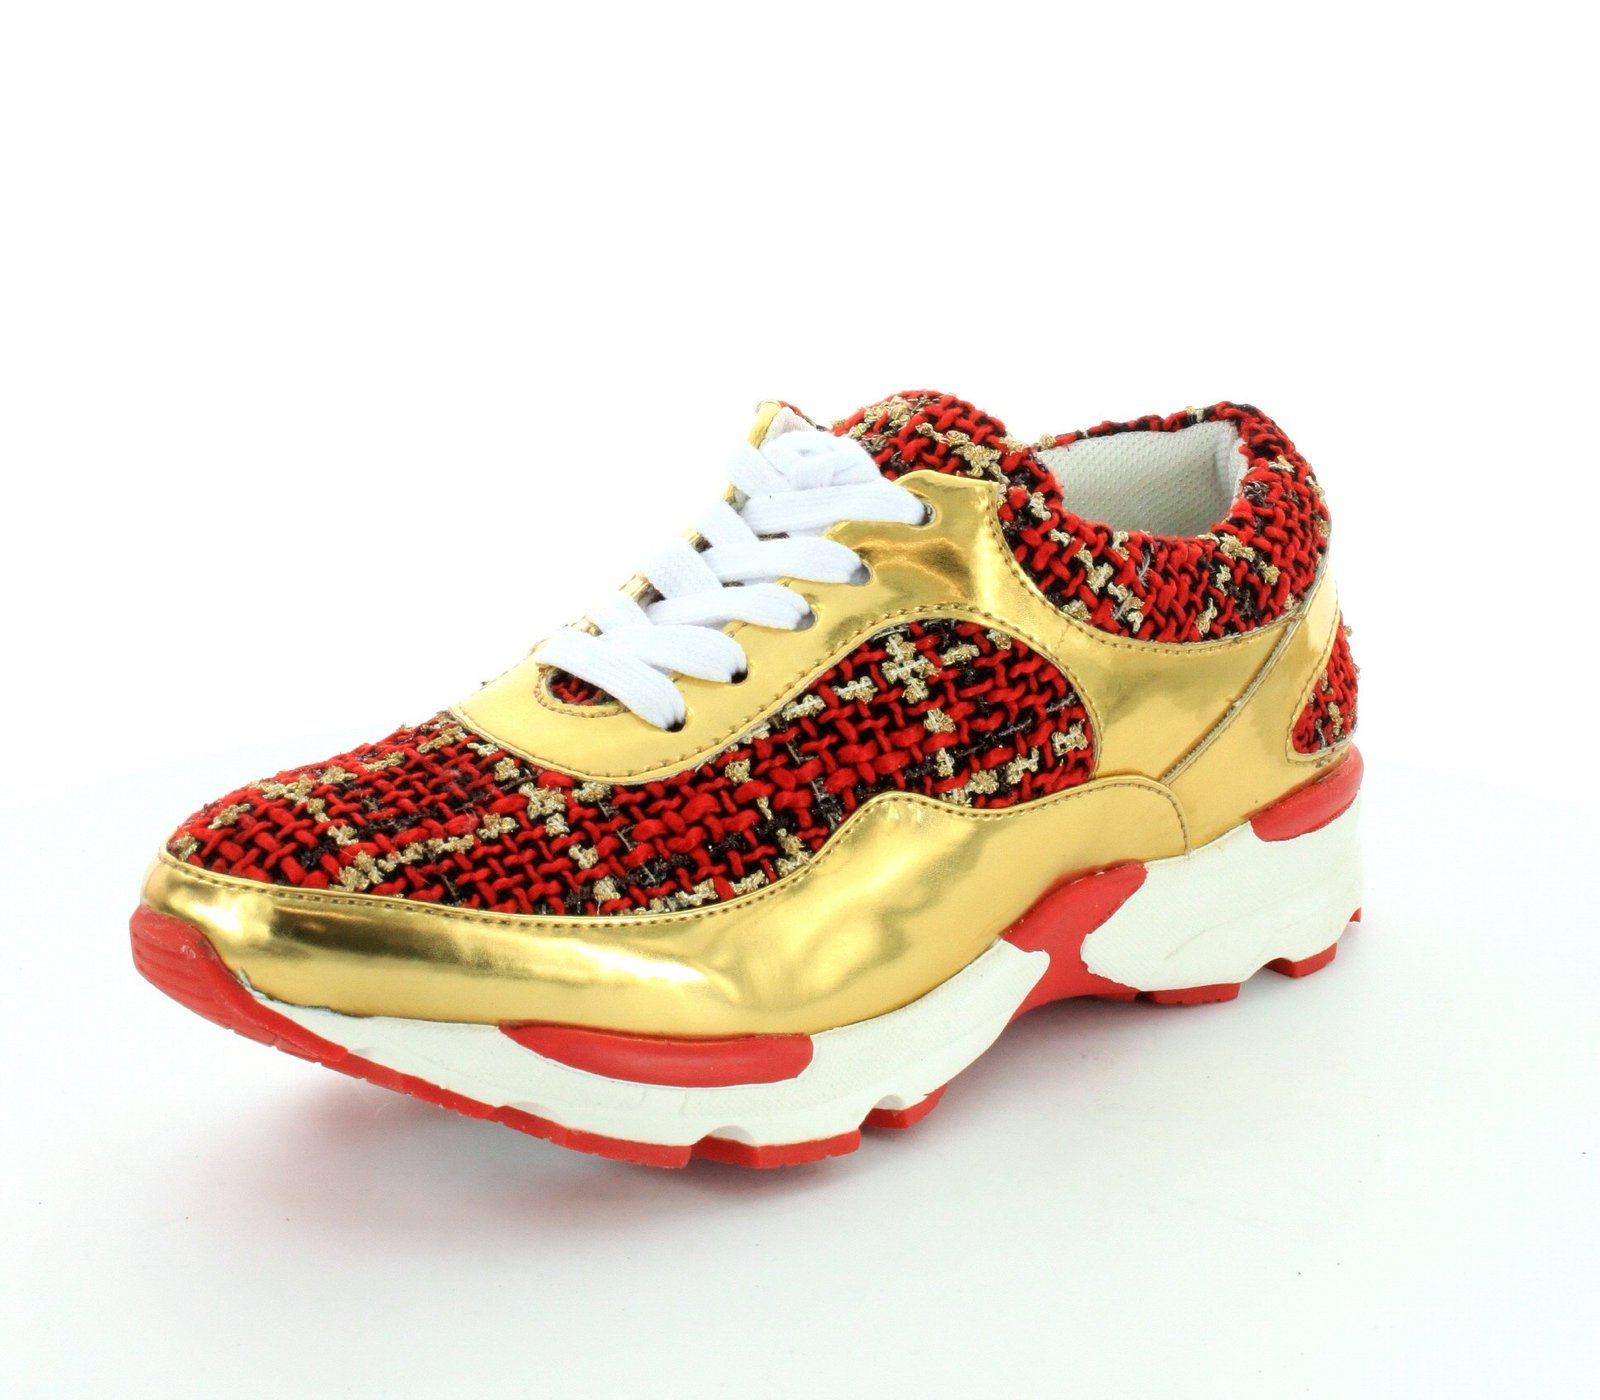 Jeffrey Campbell Womens Run Walk Gold Red Sneaker - 6.5 M